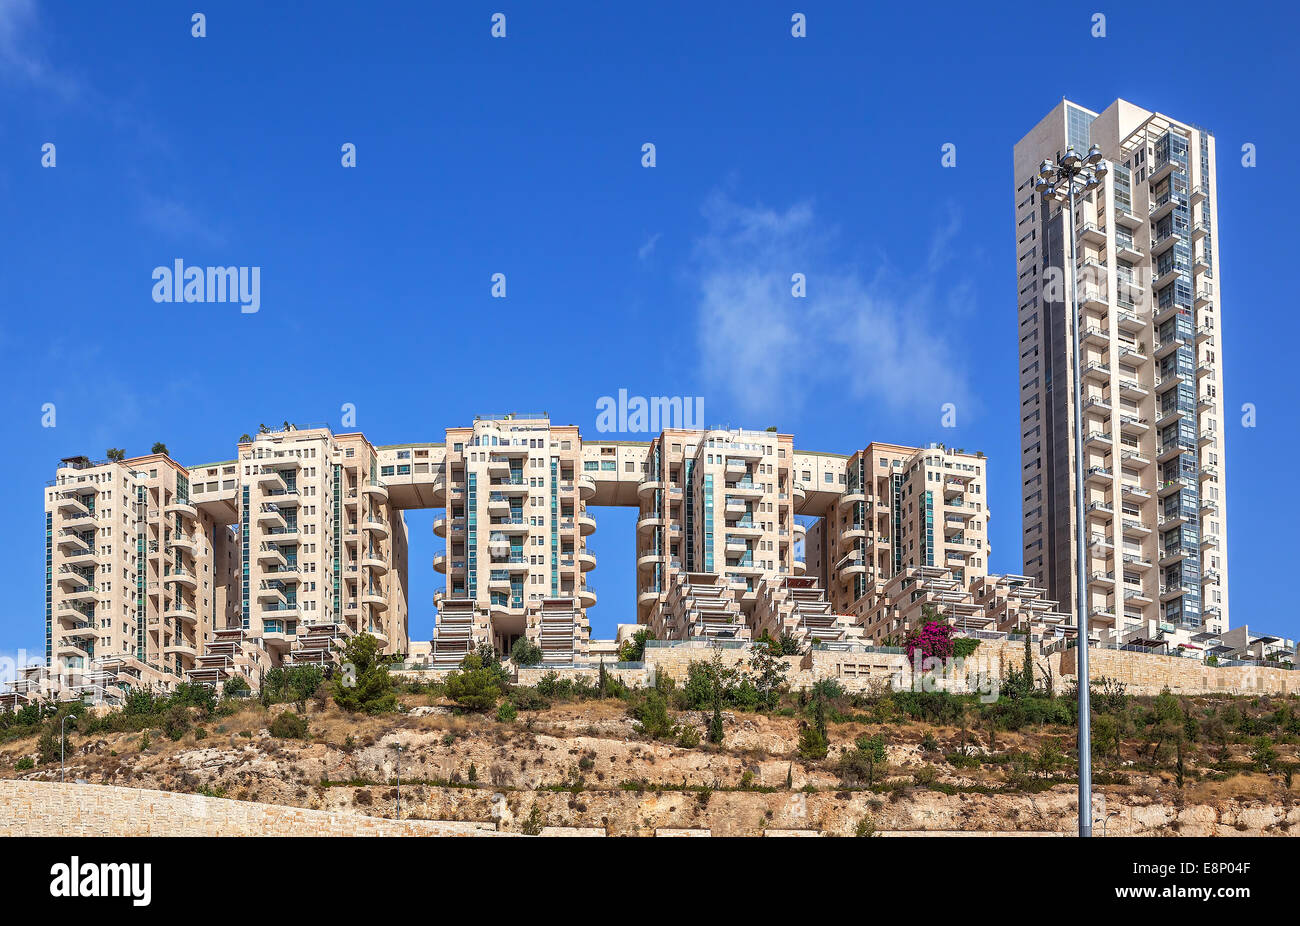 Contemporary residential complex under blue sky in Jerusalem, Israel. - Stock Image